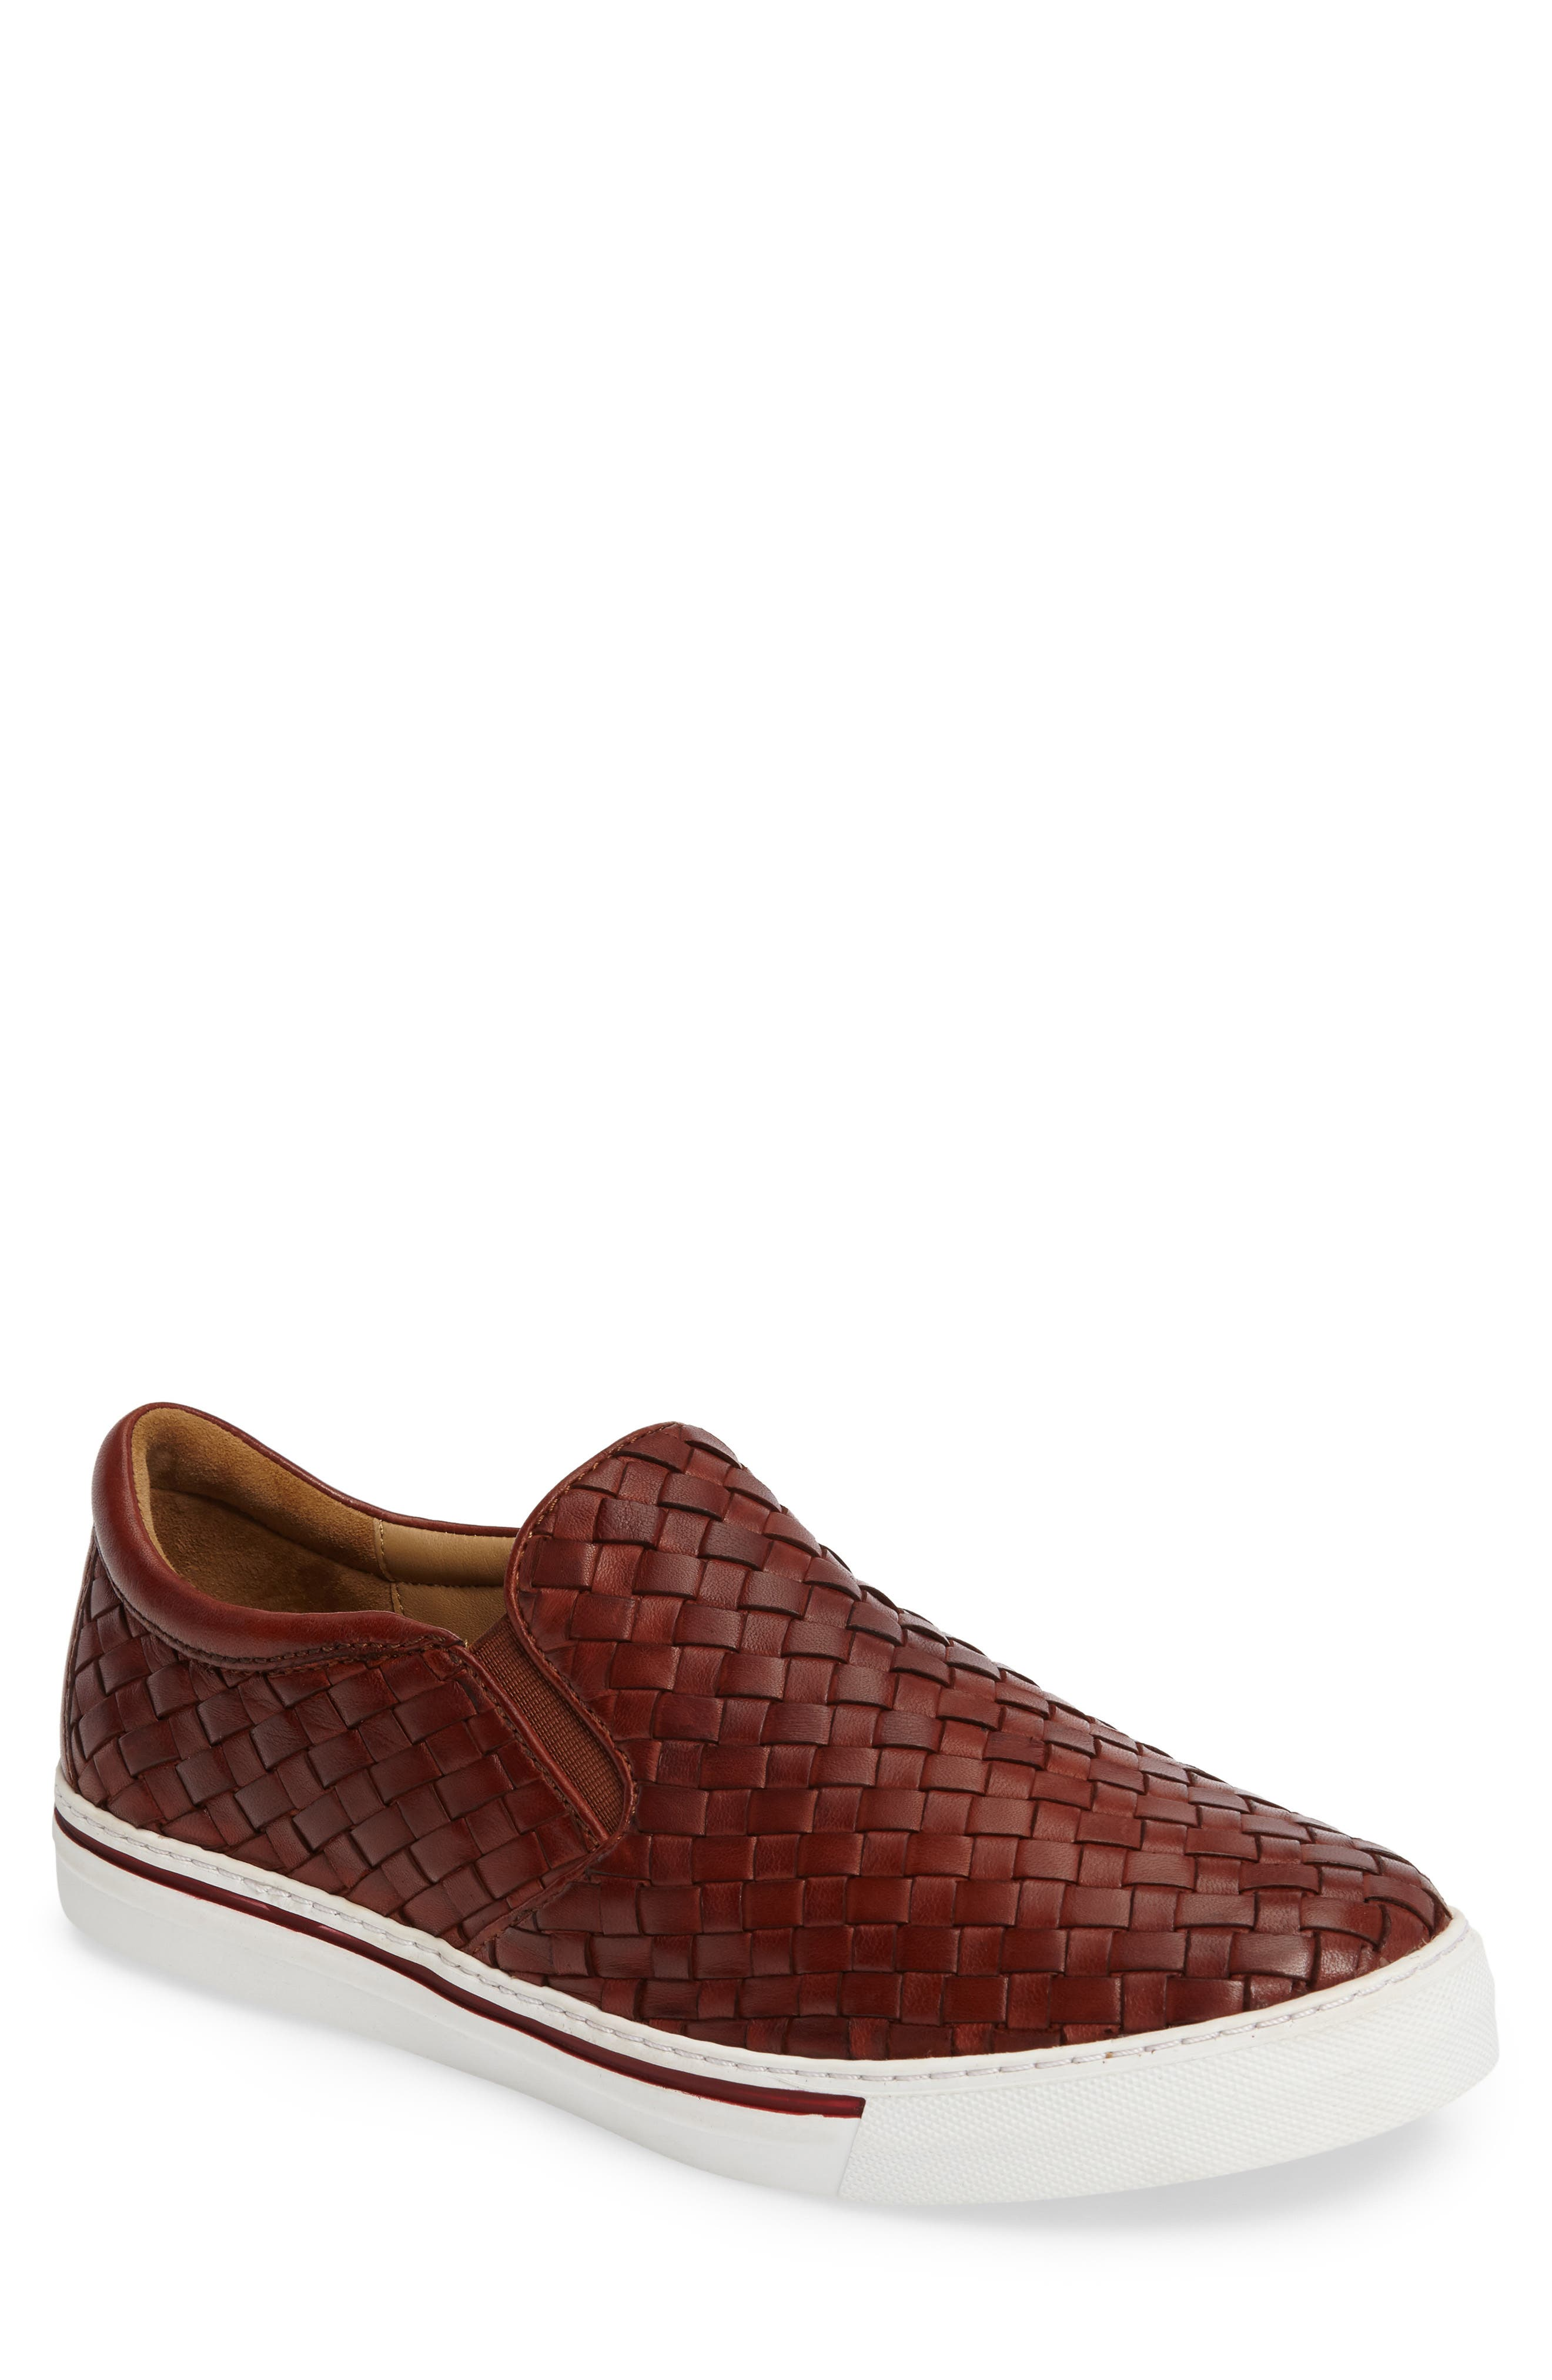 James Slip-On,                         Main,                         color, Dark Luggage Leather